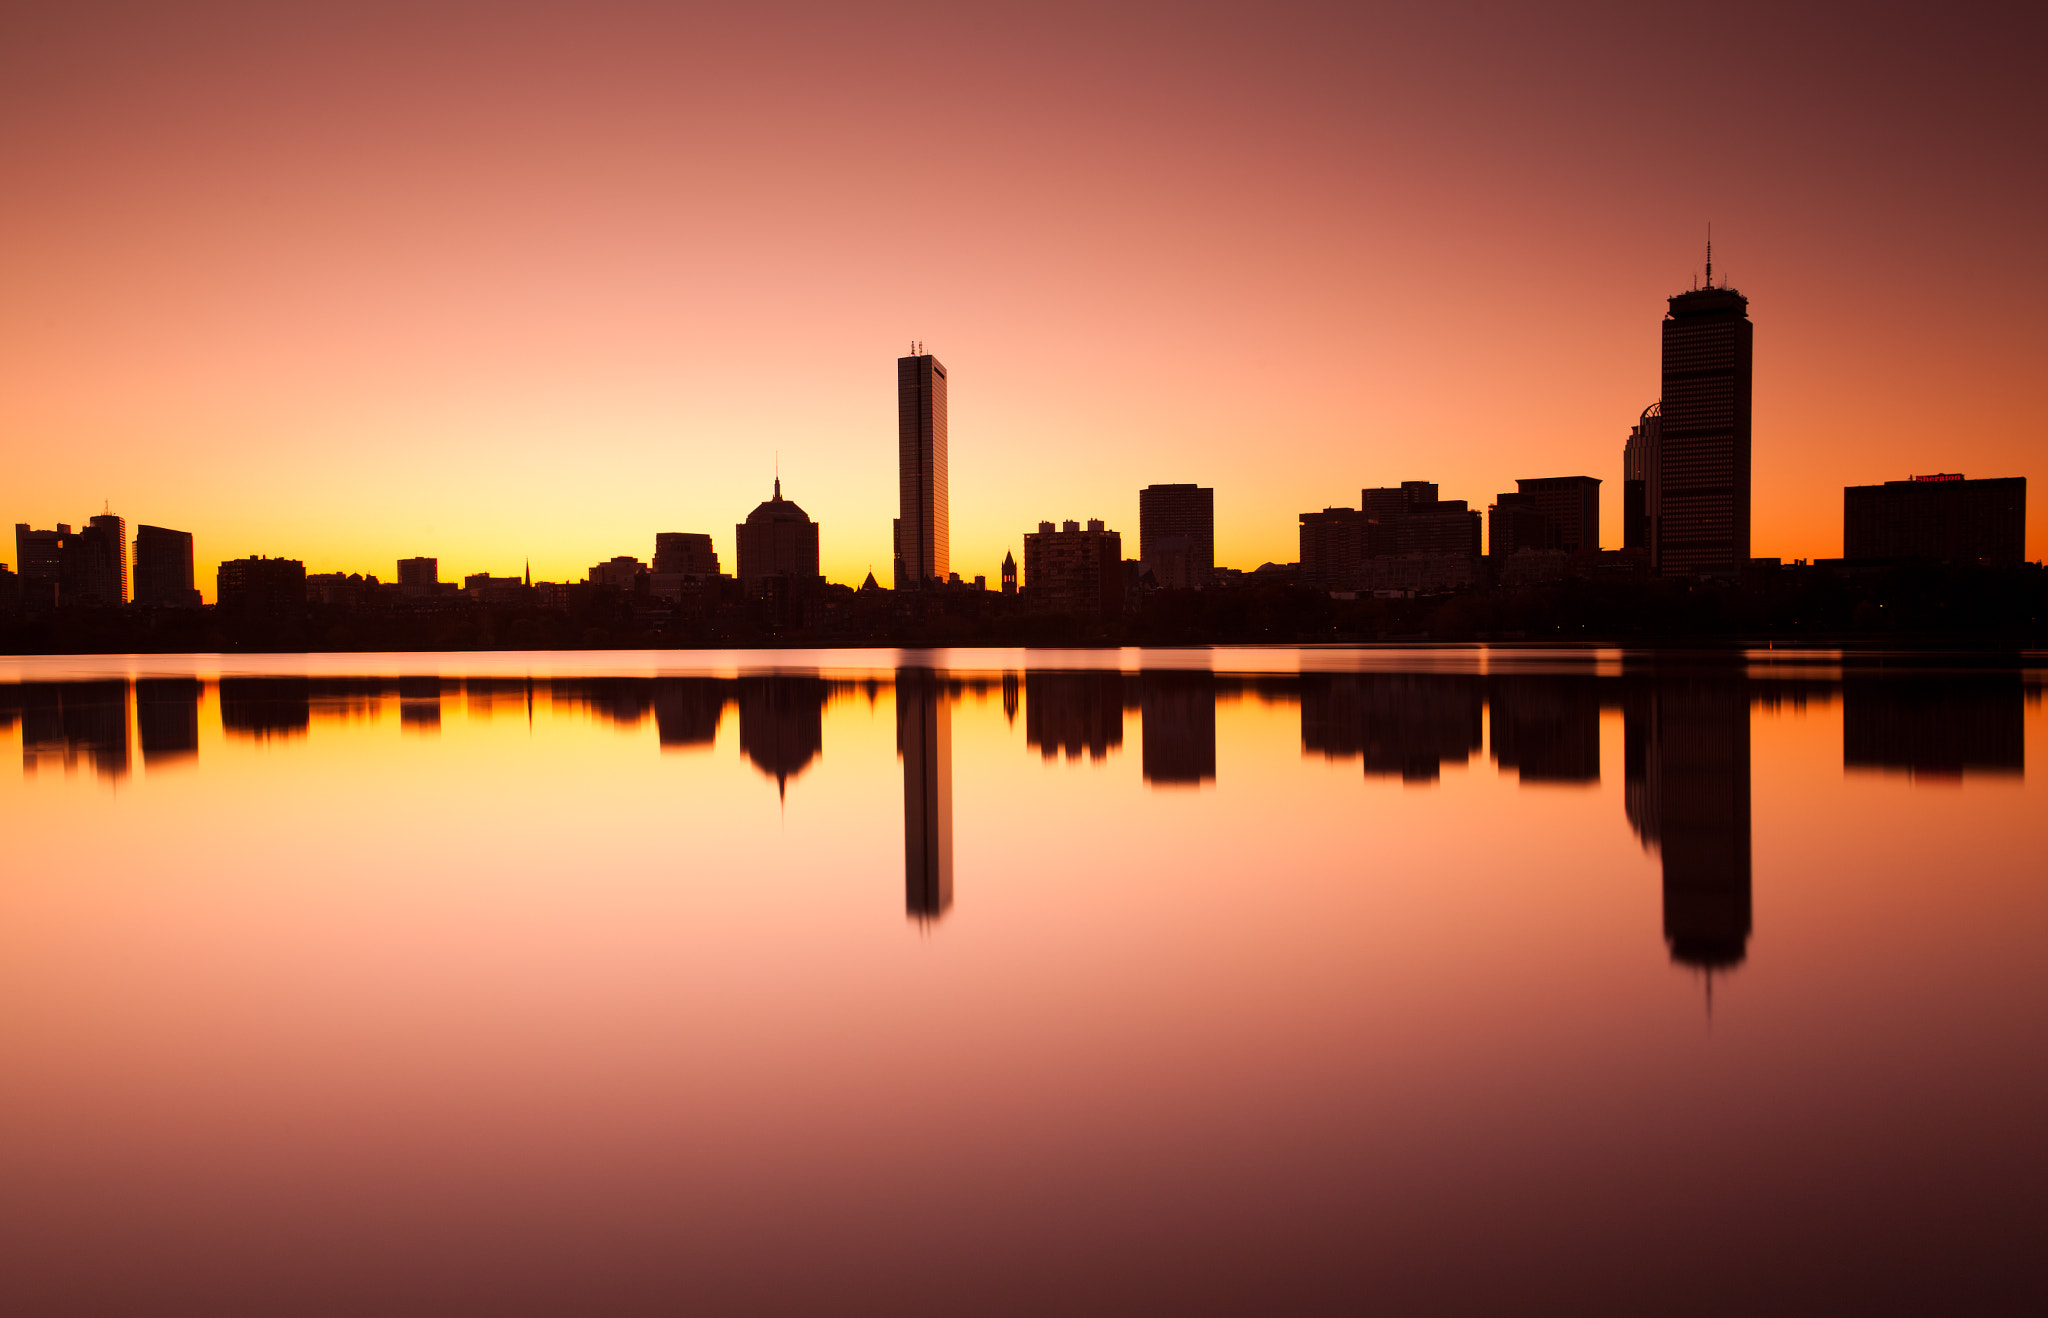 Photograph Boston at sunrise by Rich Williams on 500px